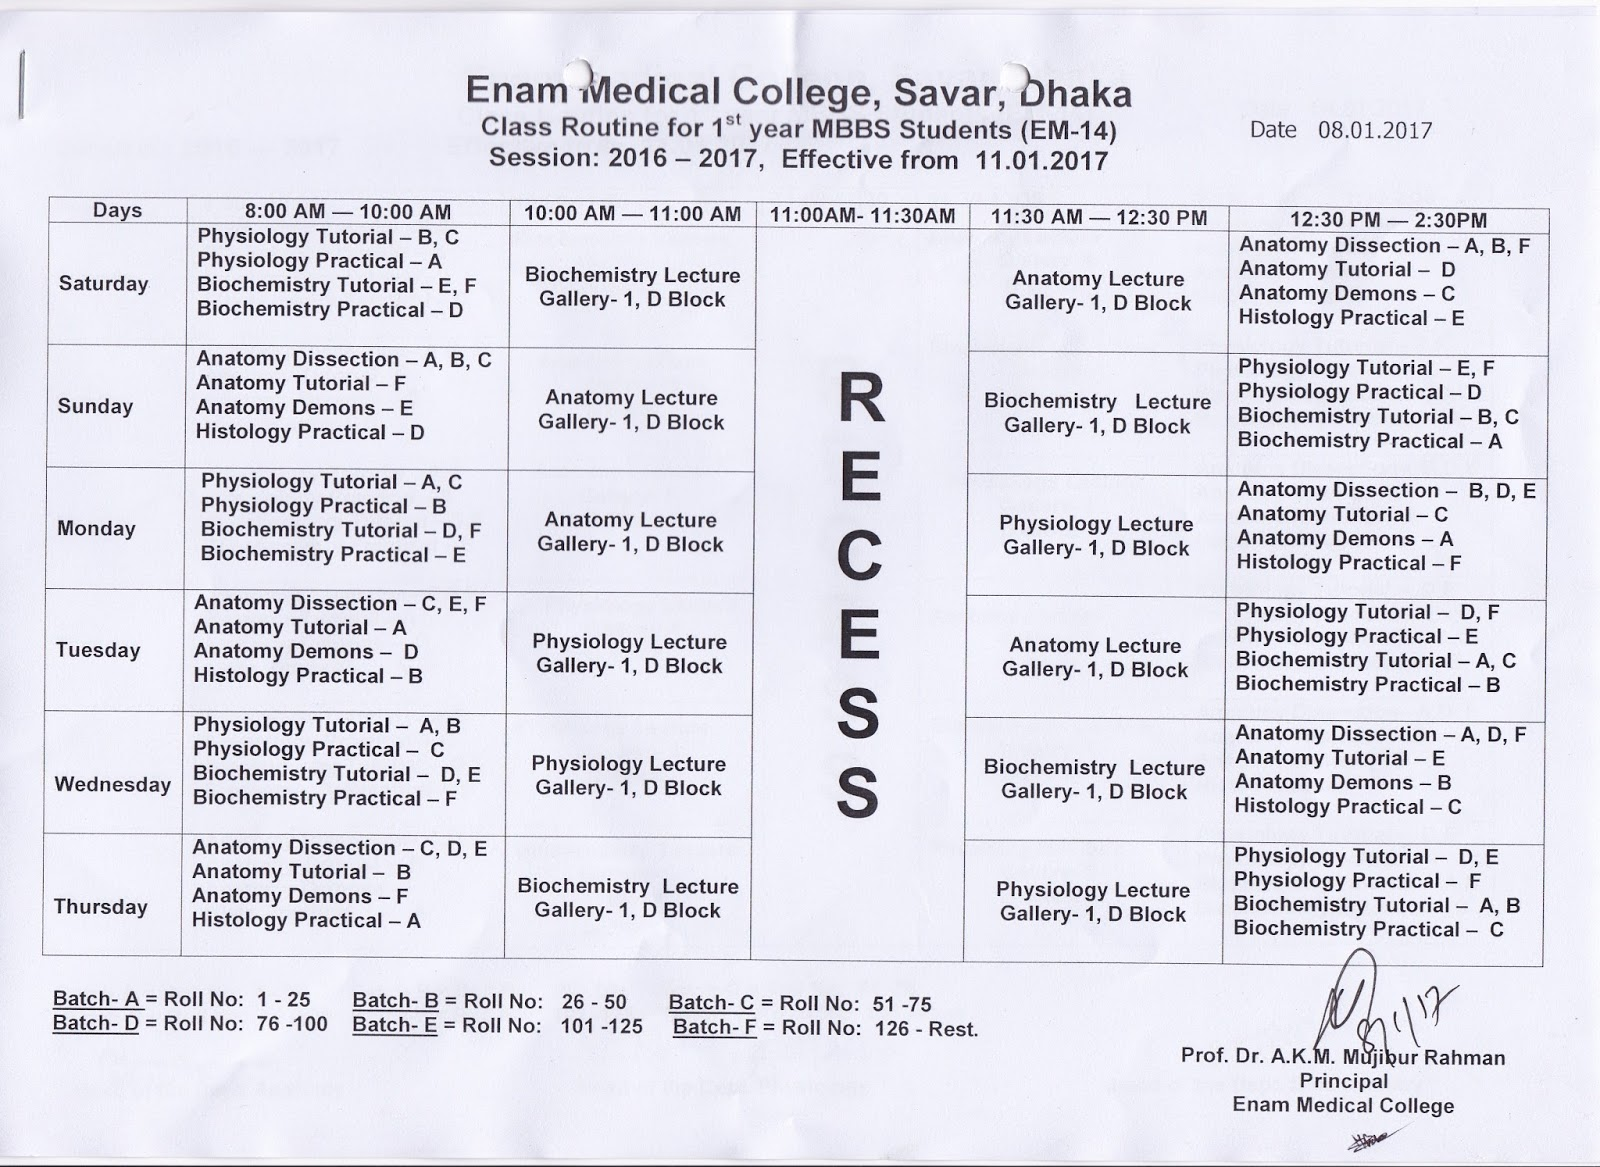 CLASS ROUTINE (EMC) ENAM MEDICAL COLLEGE